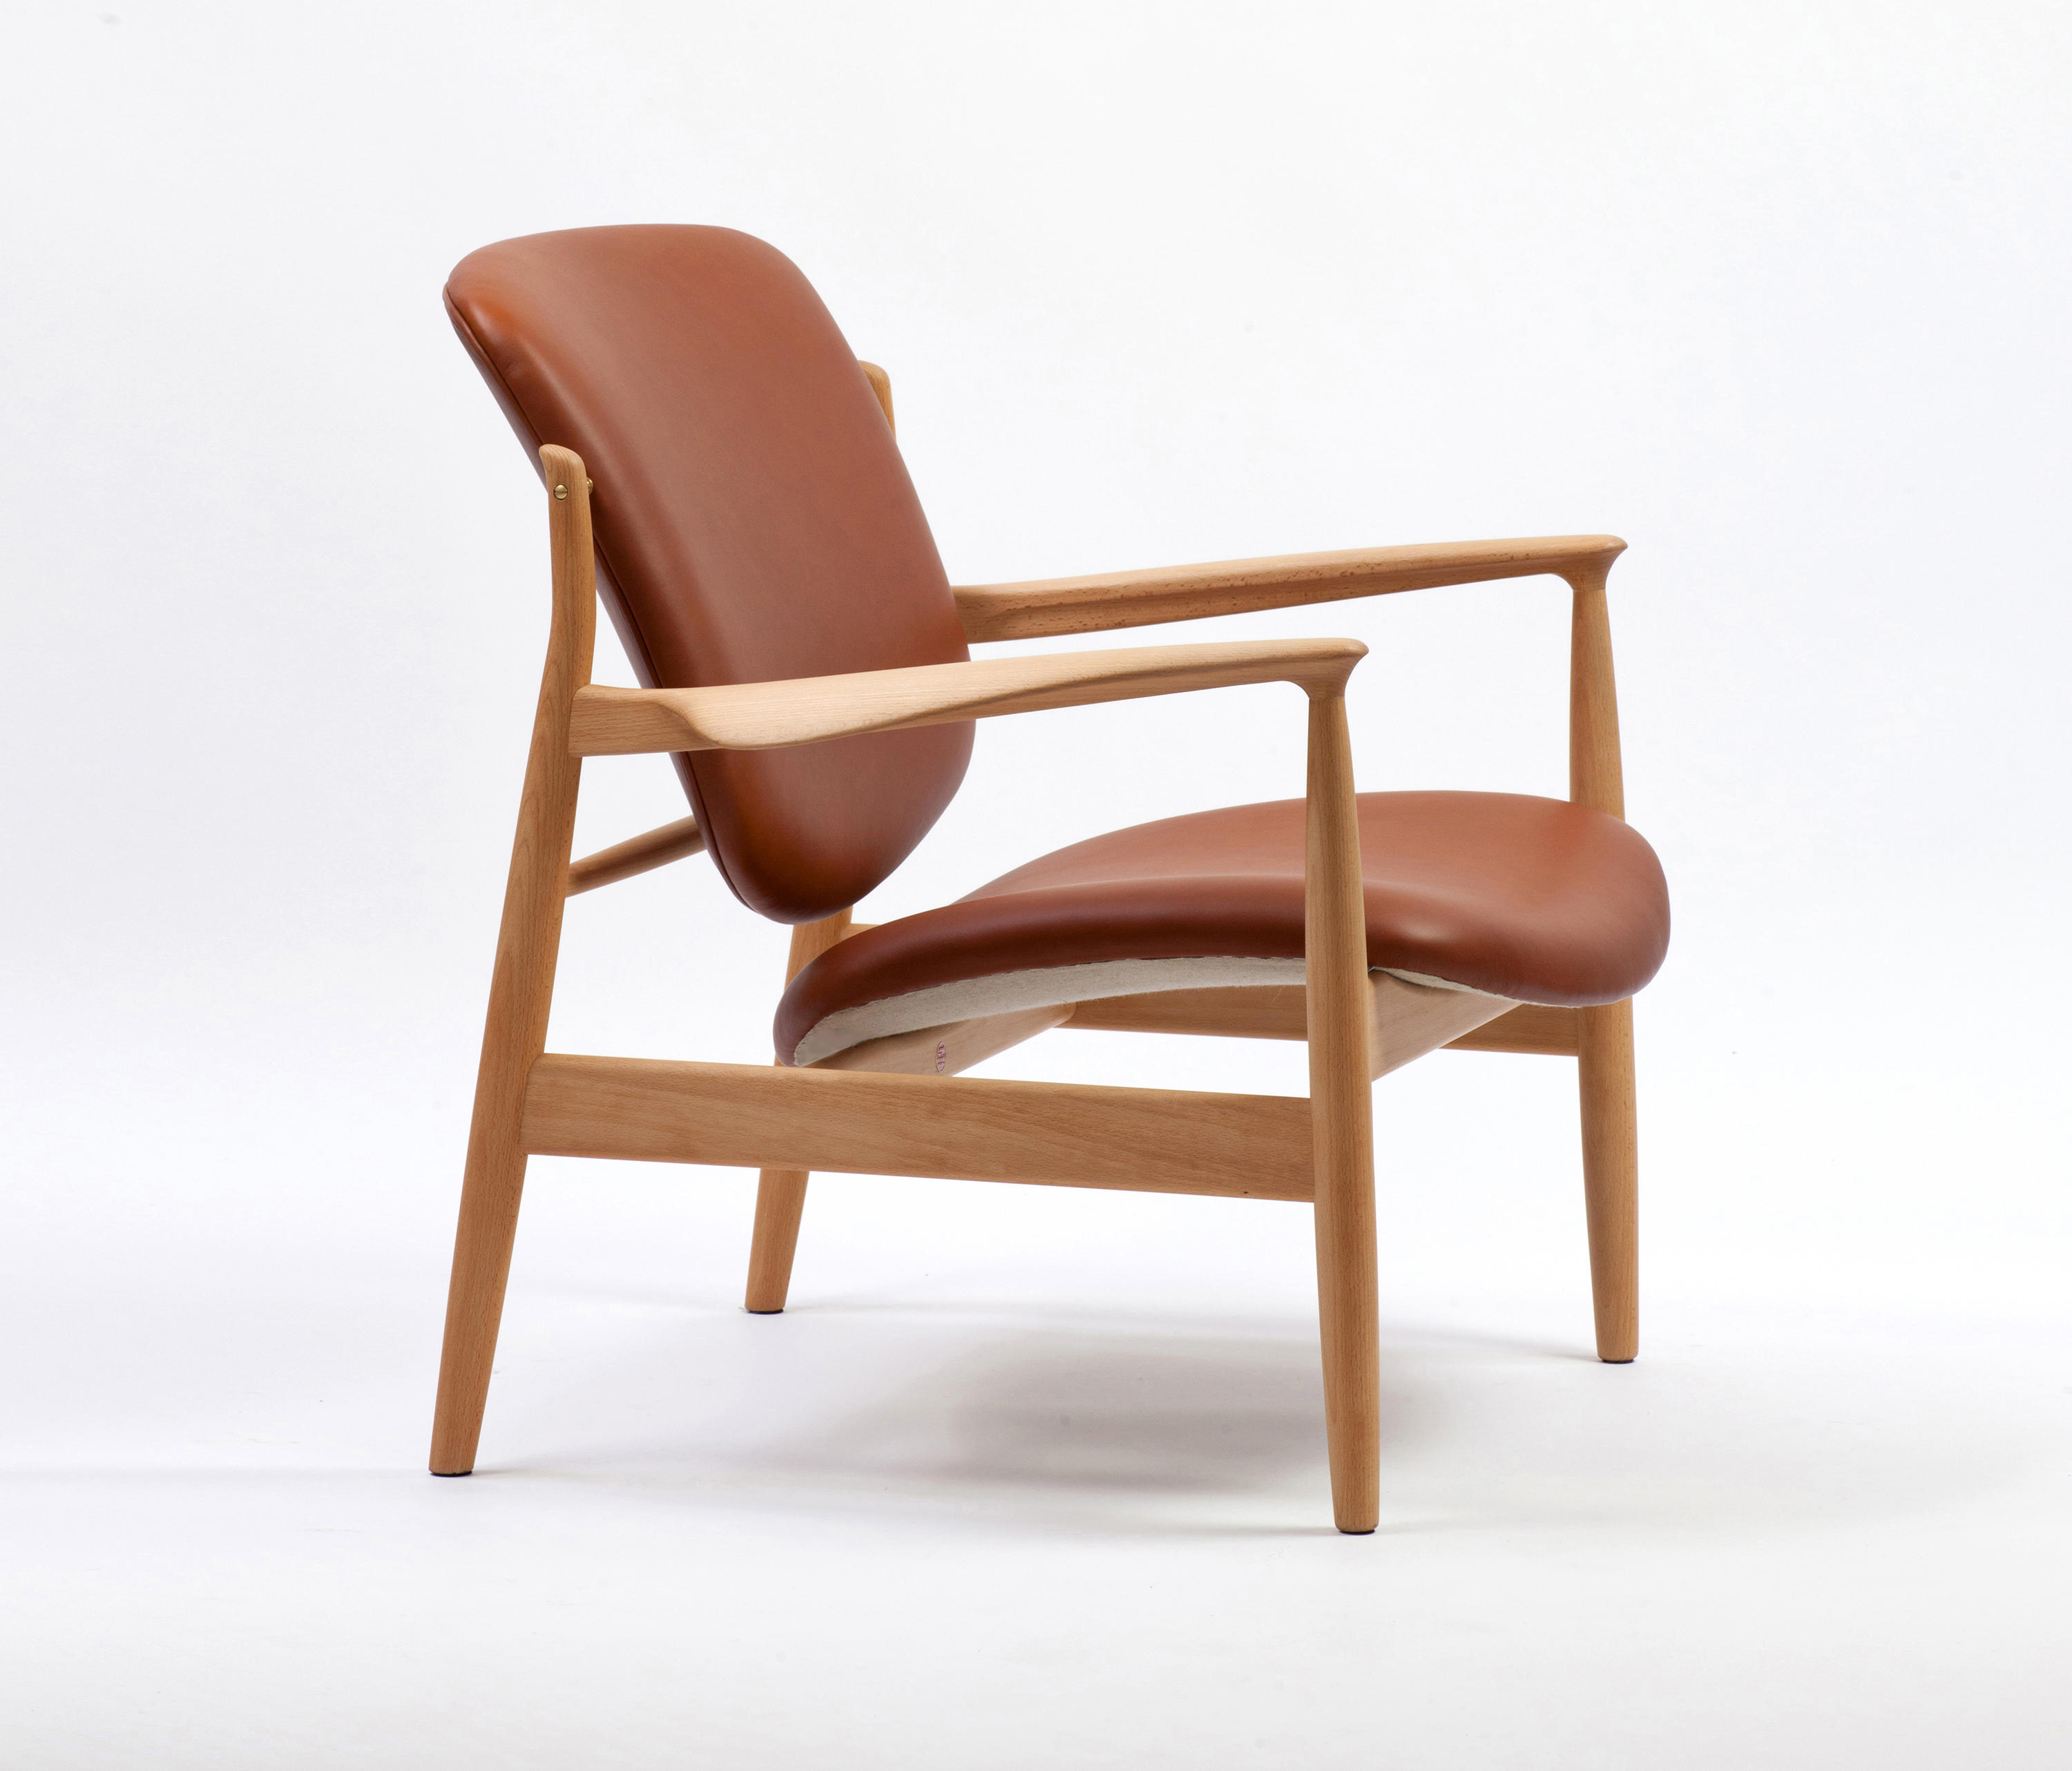 Awesome France Chair By House Of Finn Juhl   Onecollection | Lounge Chairs